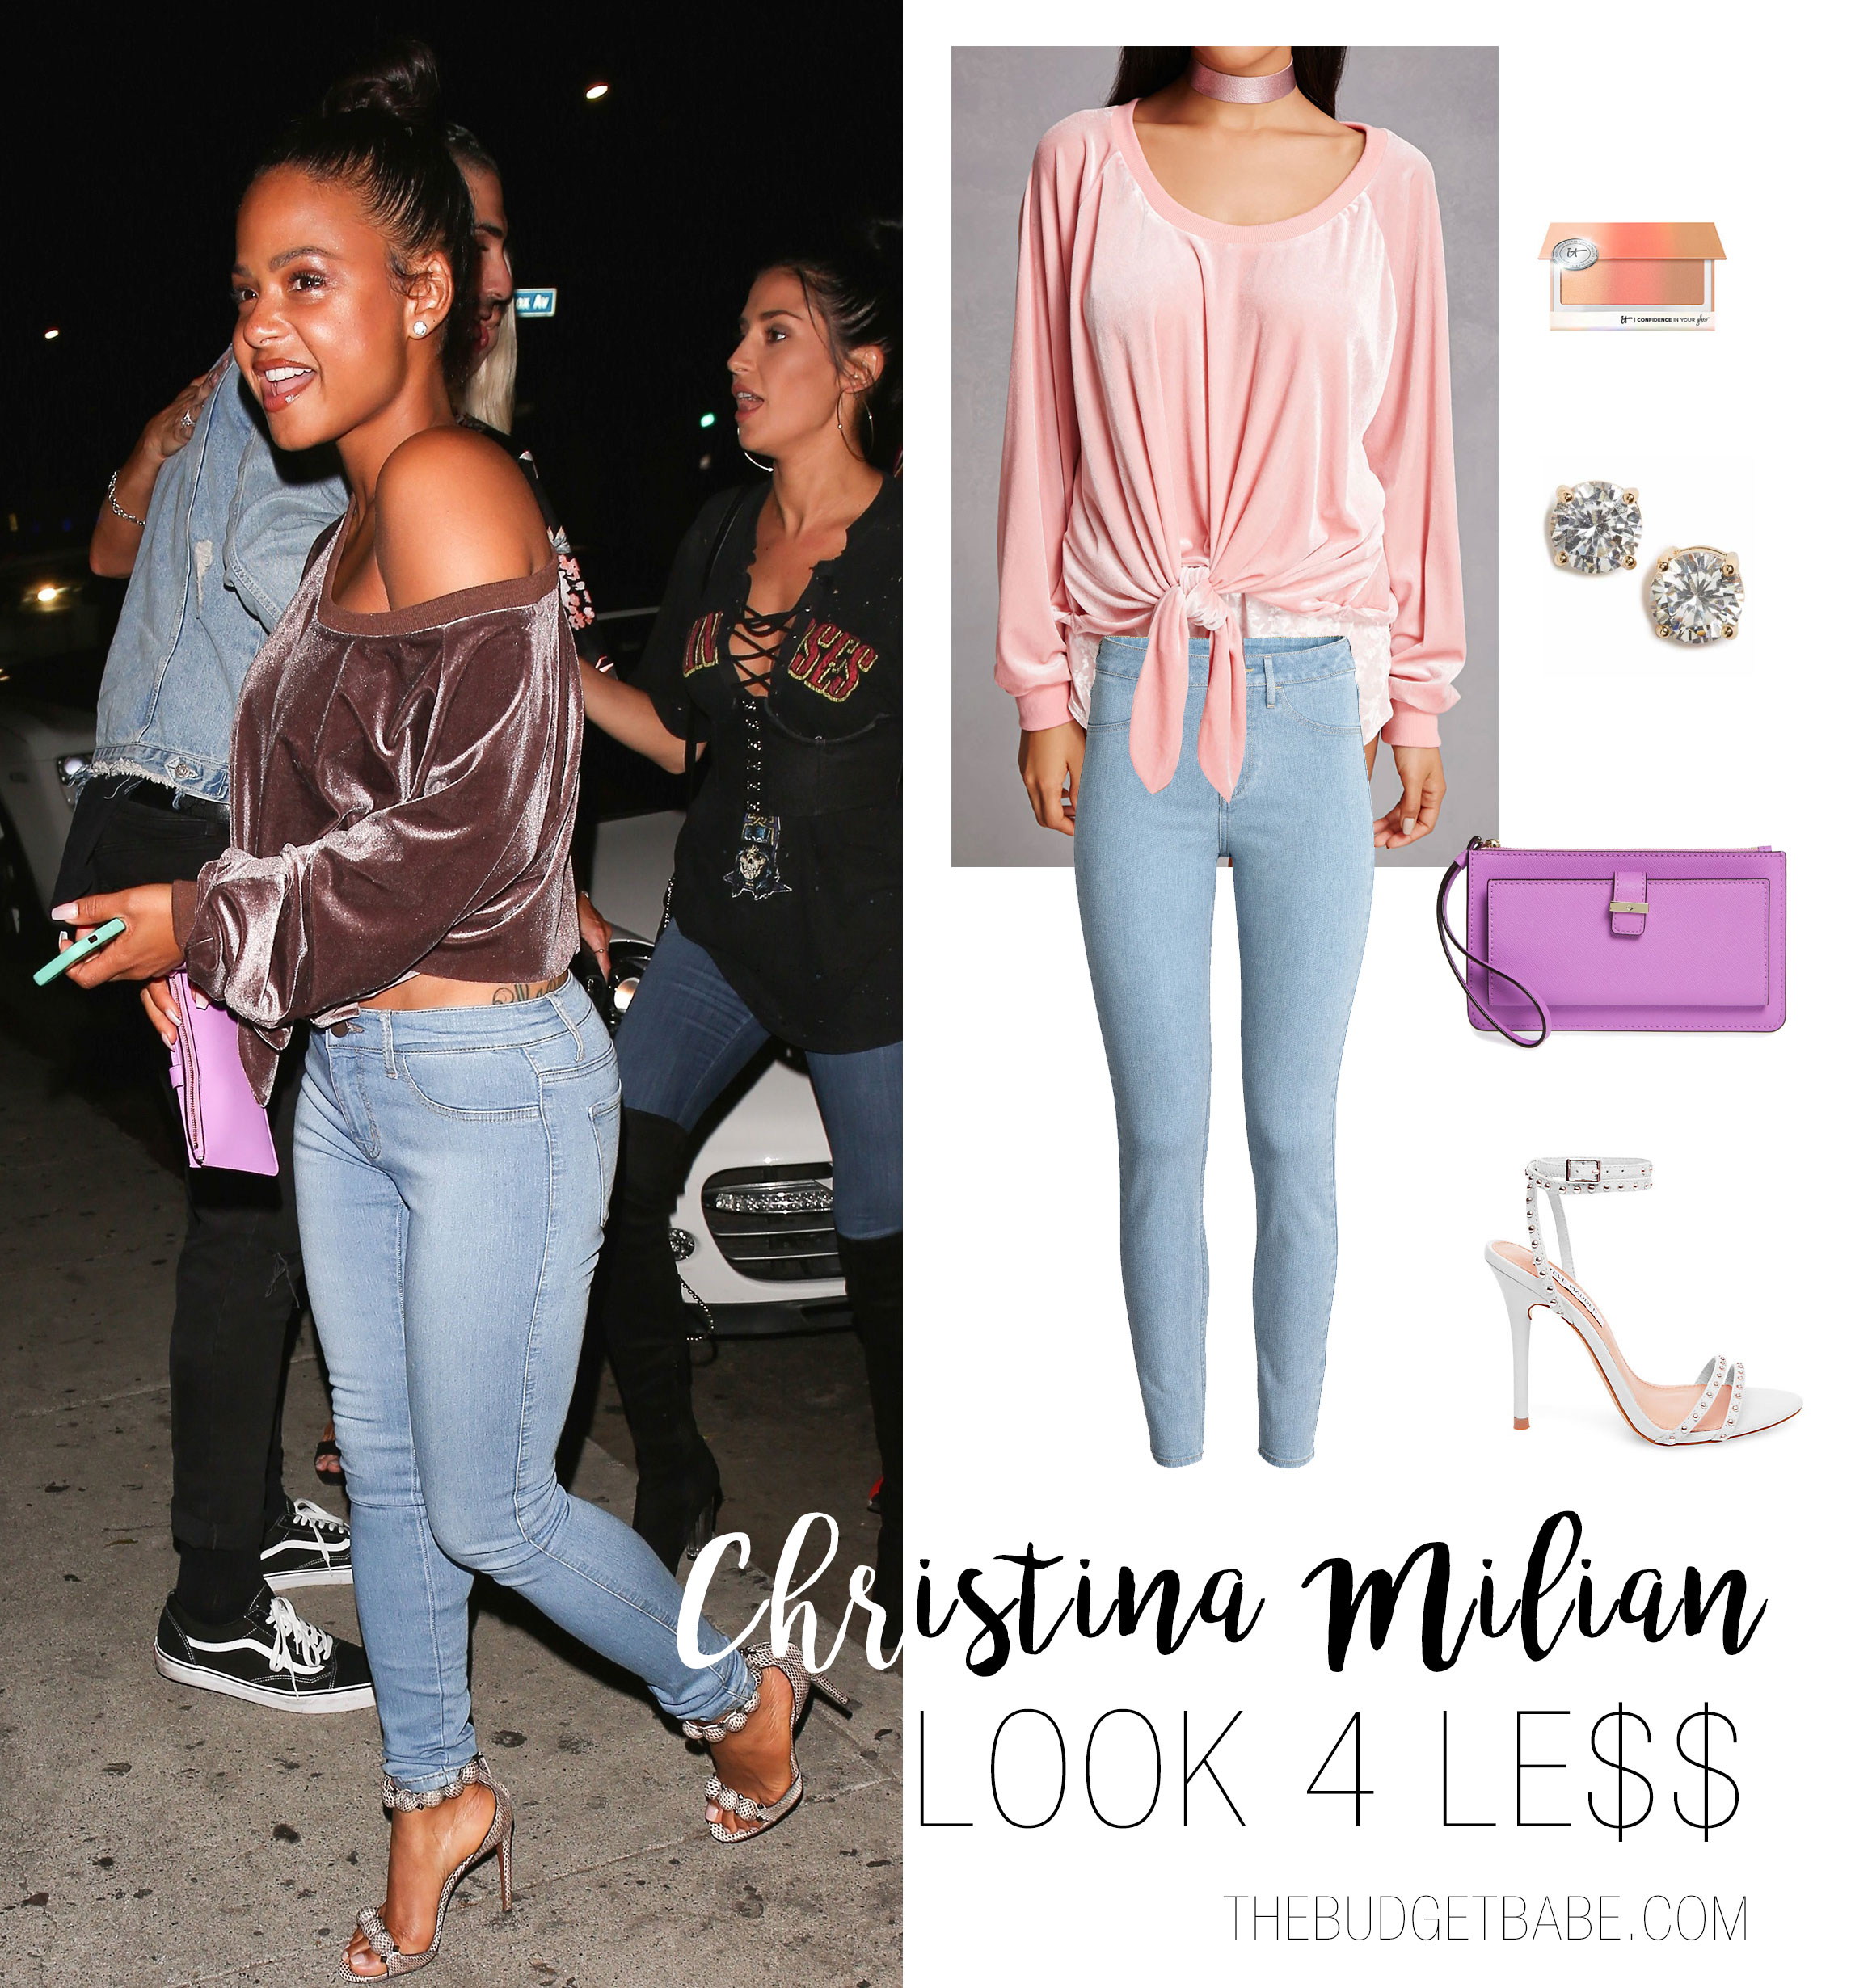 Christina Milian's velvet off-the-shoulder sweatshirt and skinny jeans look for less